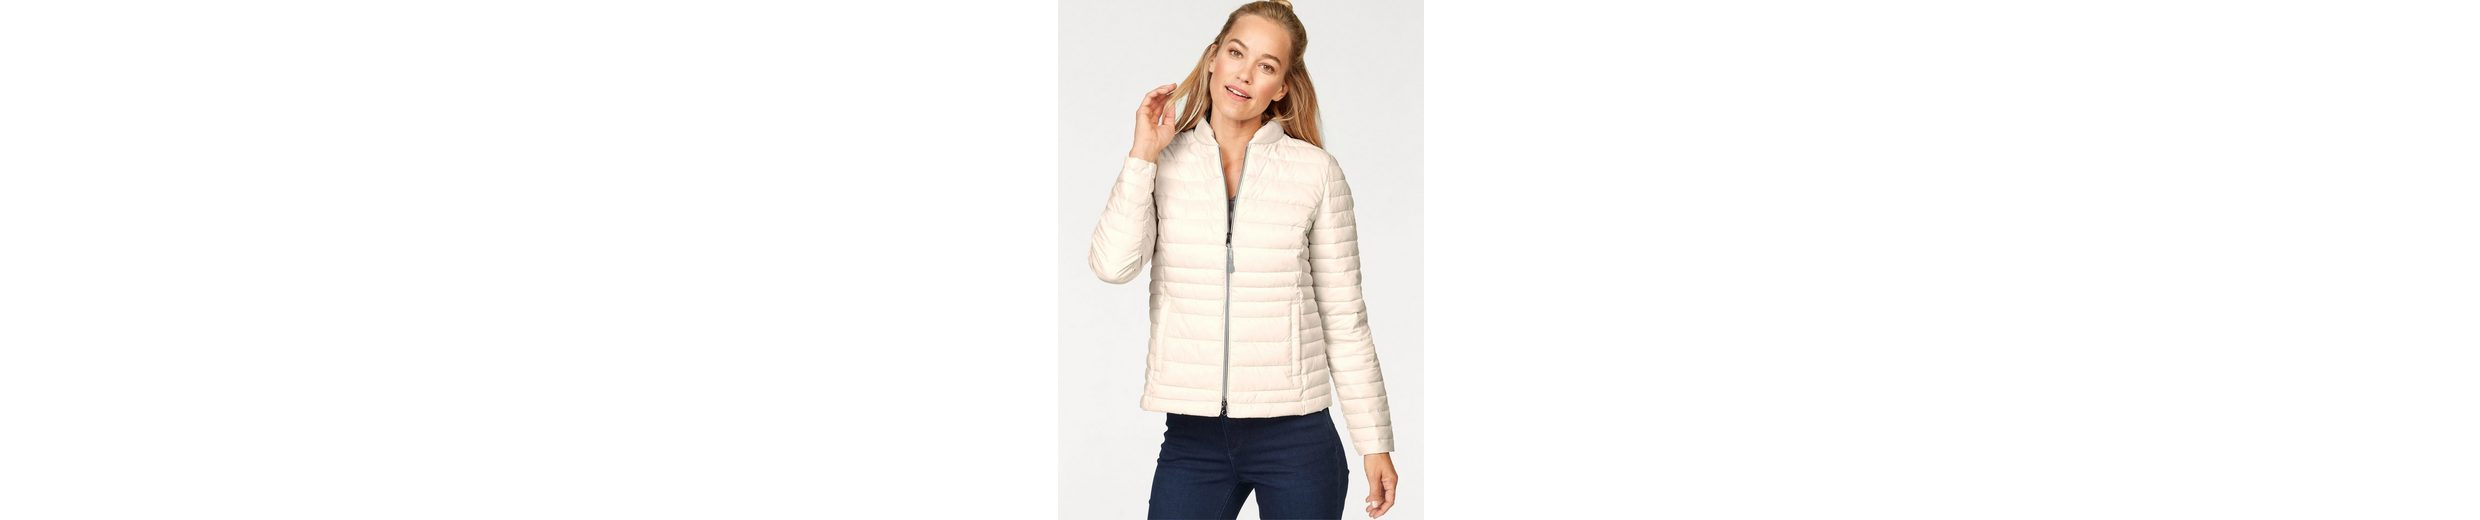 STREET ONE Steppjacke, leichte Steppjacke Karla mit extra Shopping-Bag